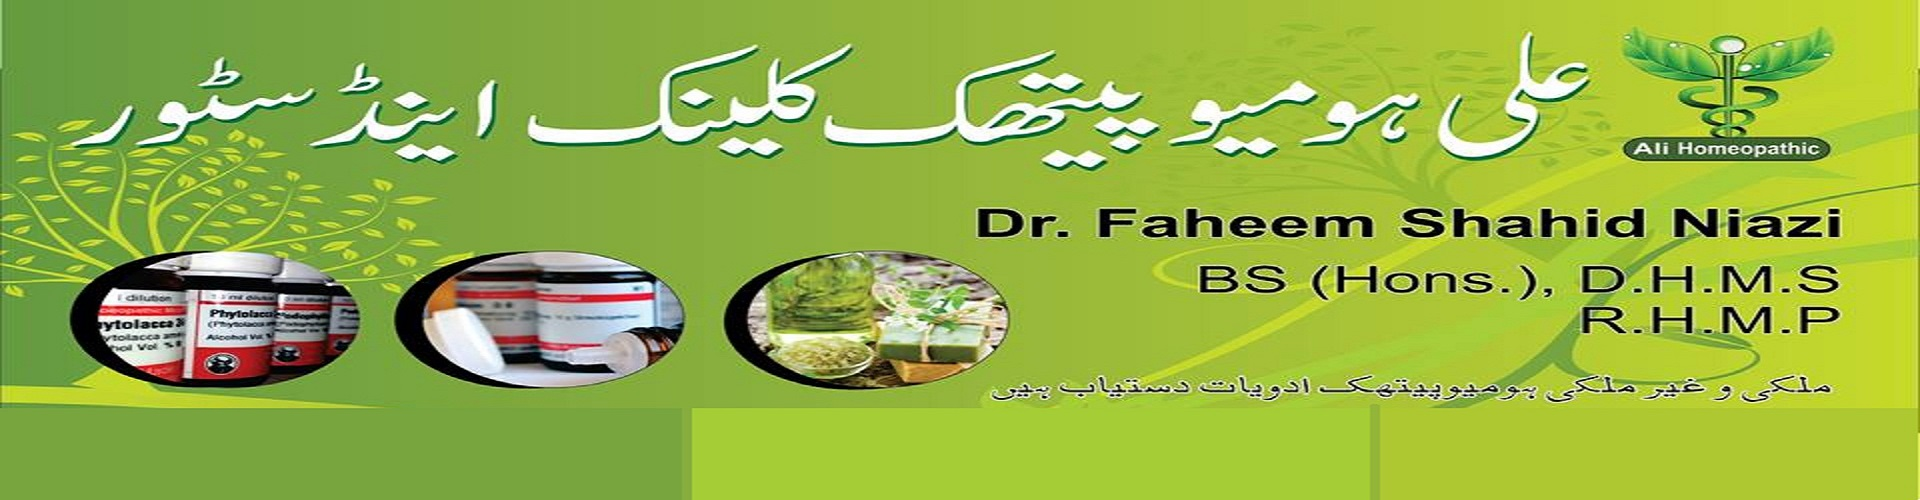 Ali homeopathic clinic